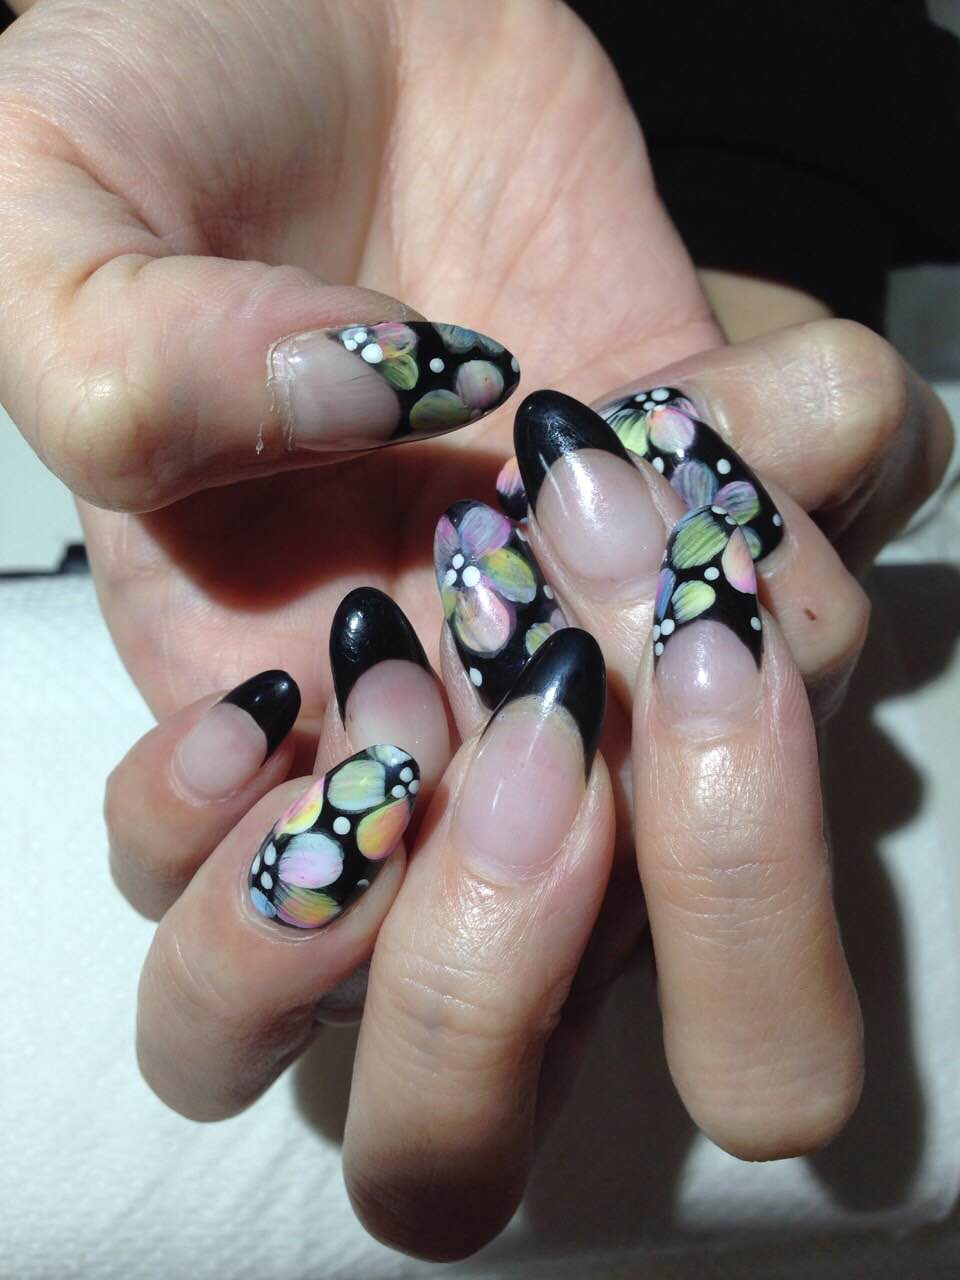 NailSalon Churamanaのネイル